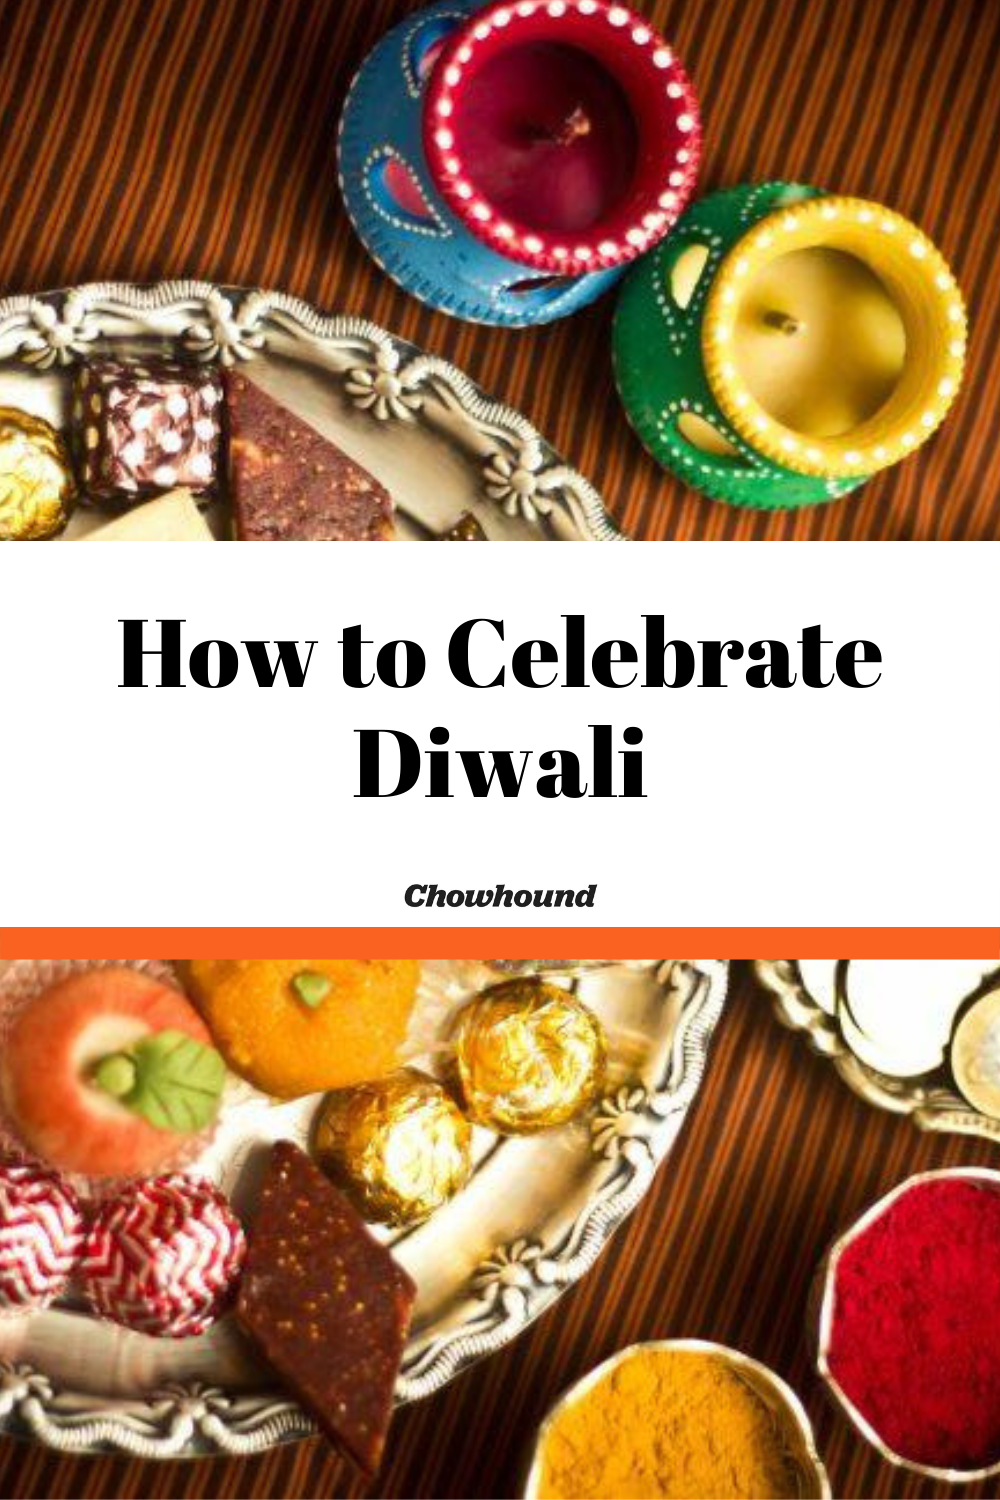 How to Celebrate Diwali New recipes, Diwali food, Diwali